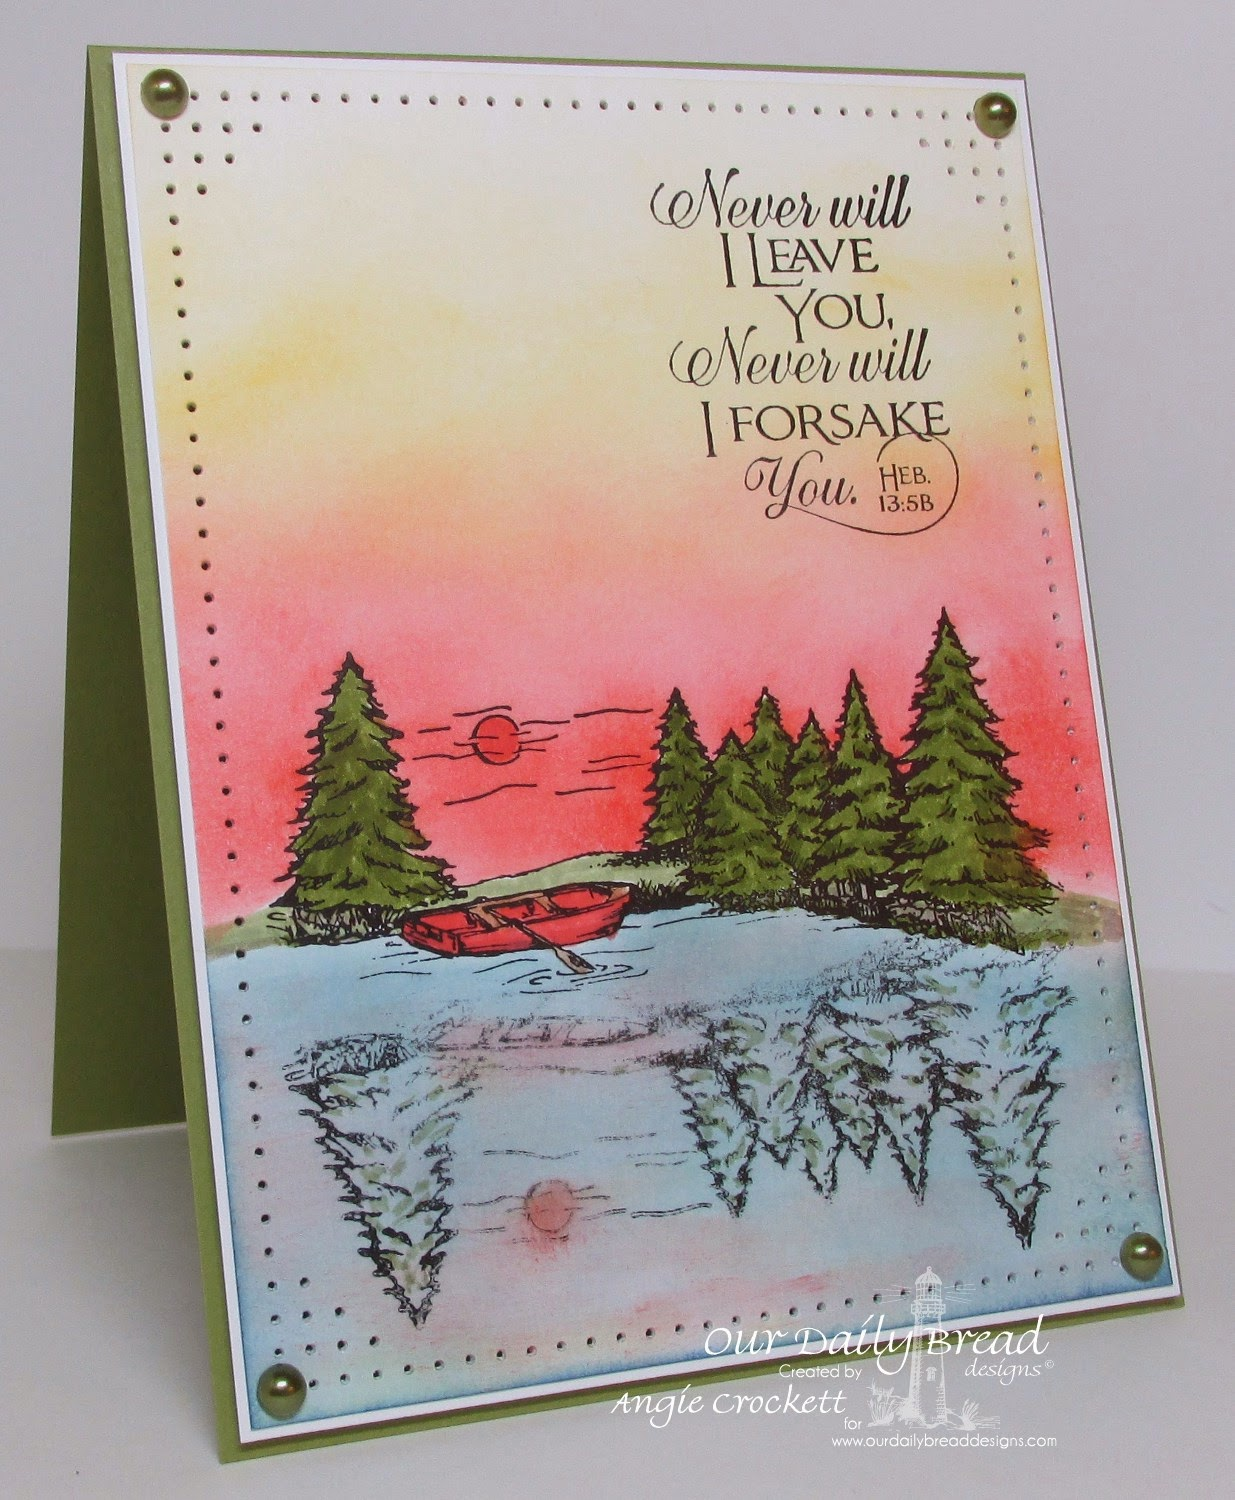 ODBD With Deepest Sympathy, Scripture Collection 10, Card Designer Angie Crockett